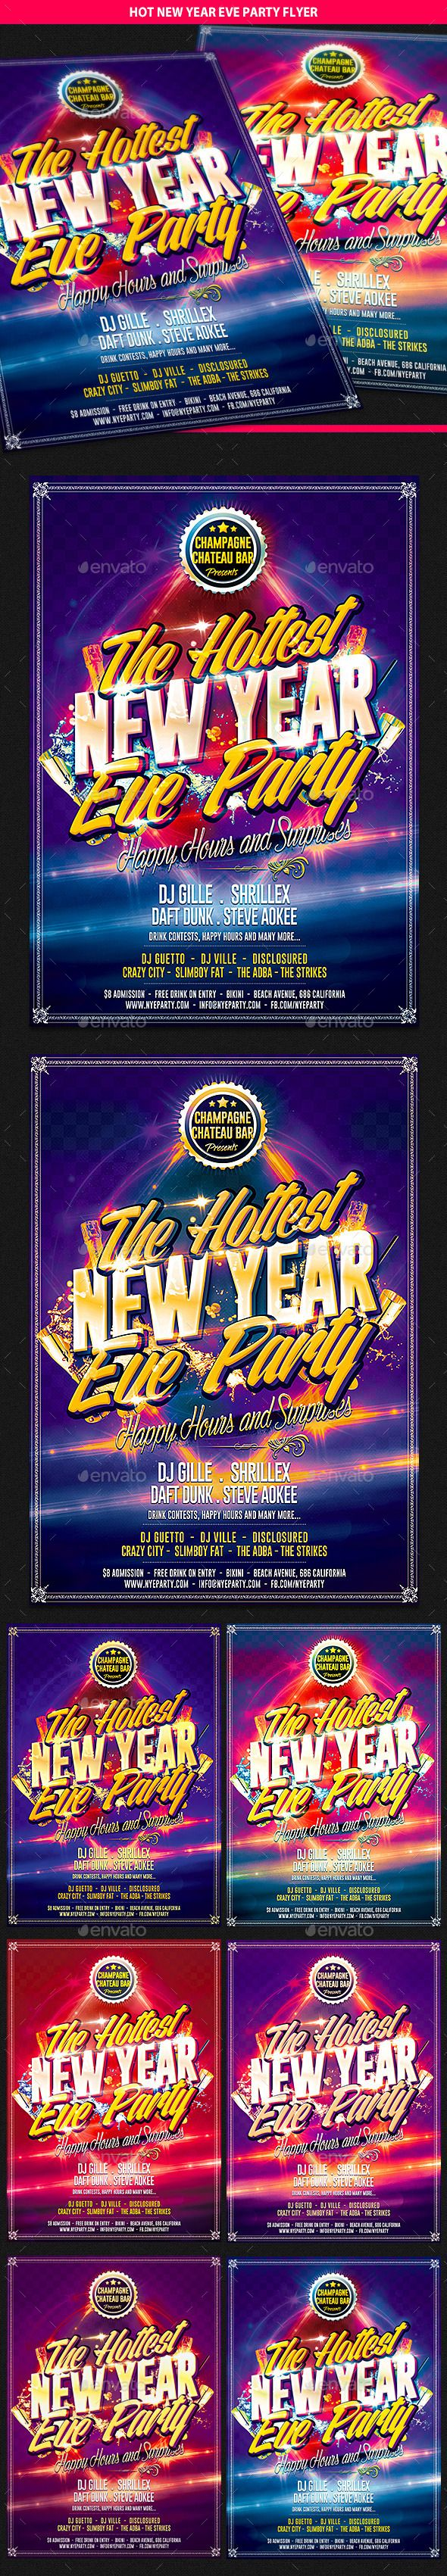 Pin by Alex on Night party poster template | Party flyer ...